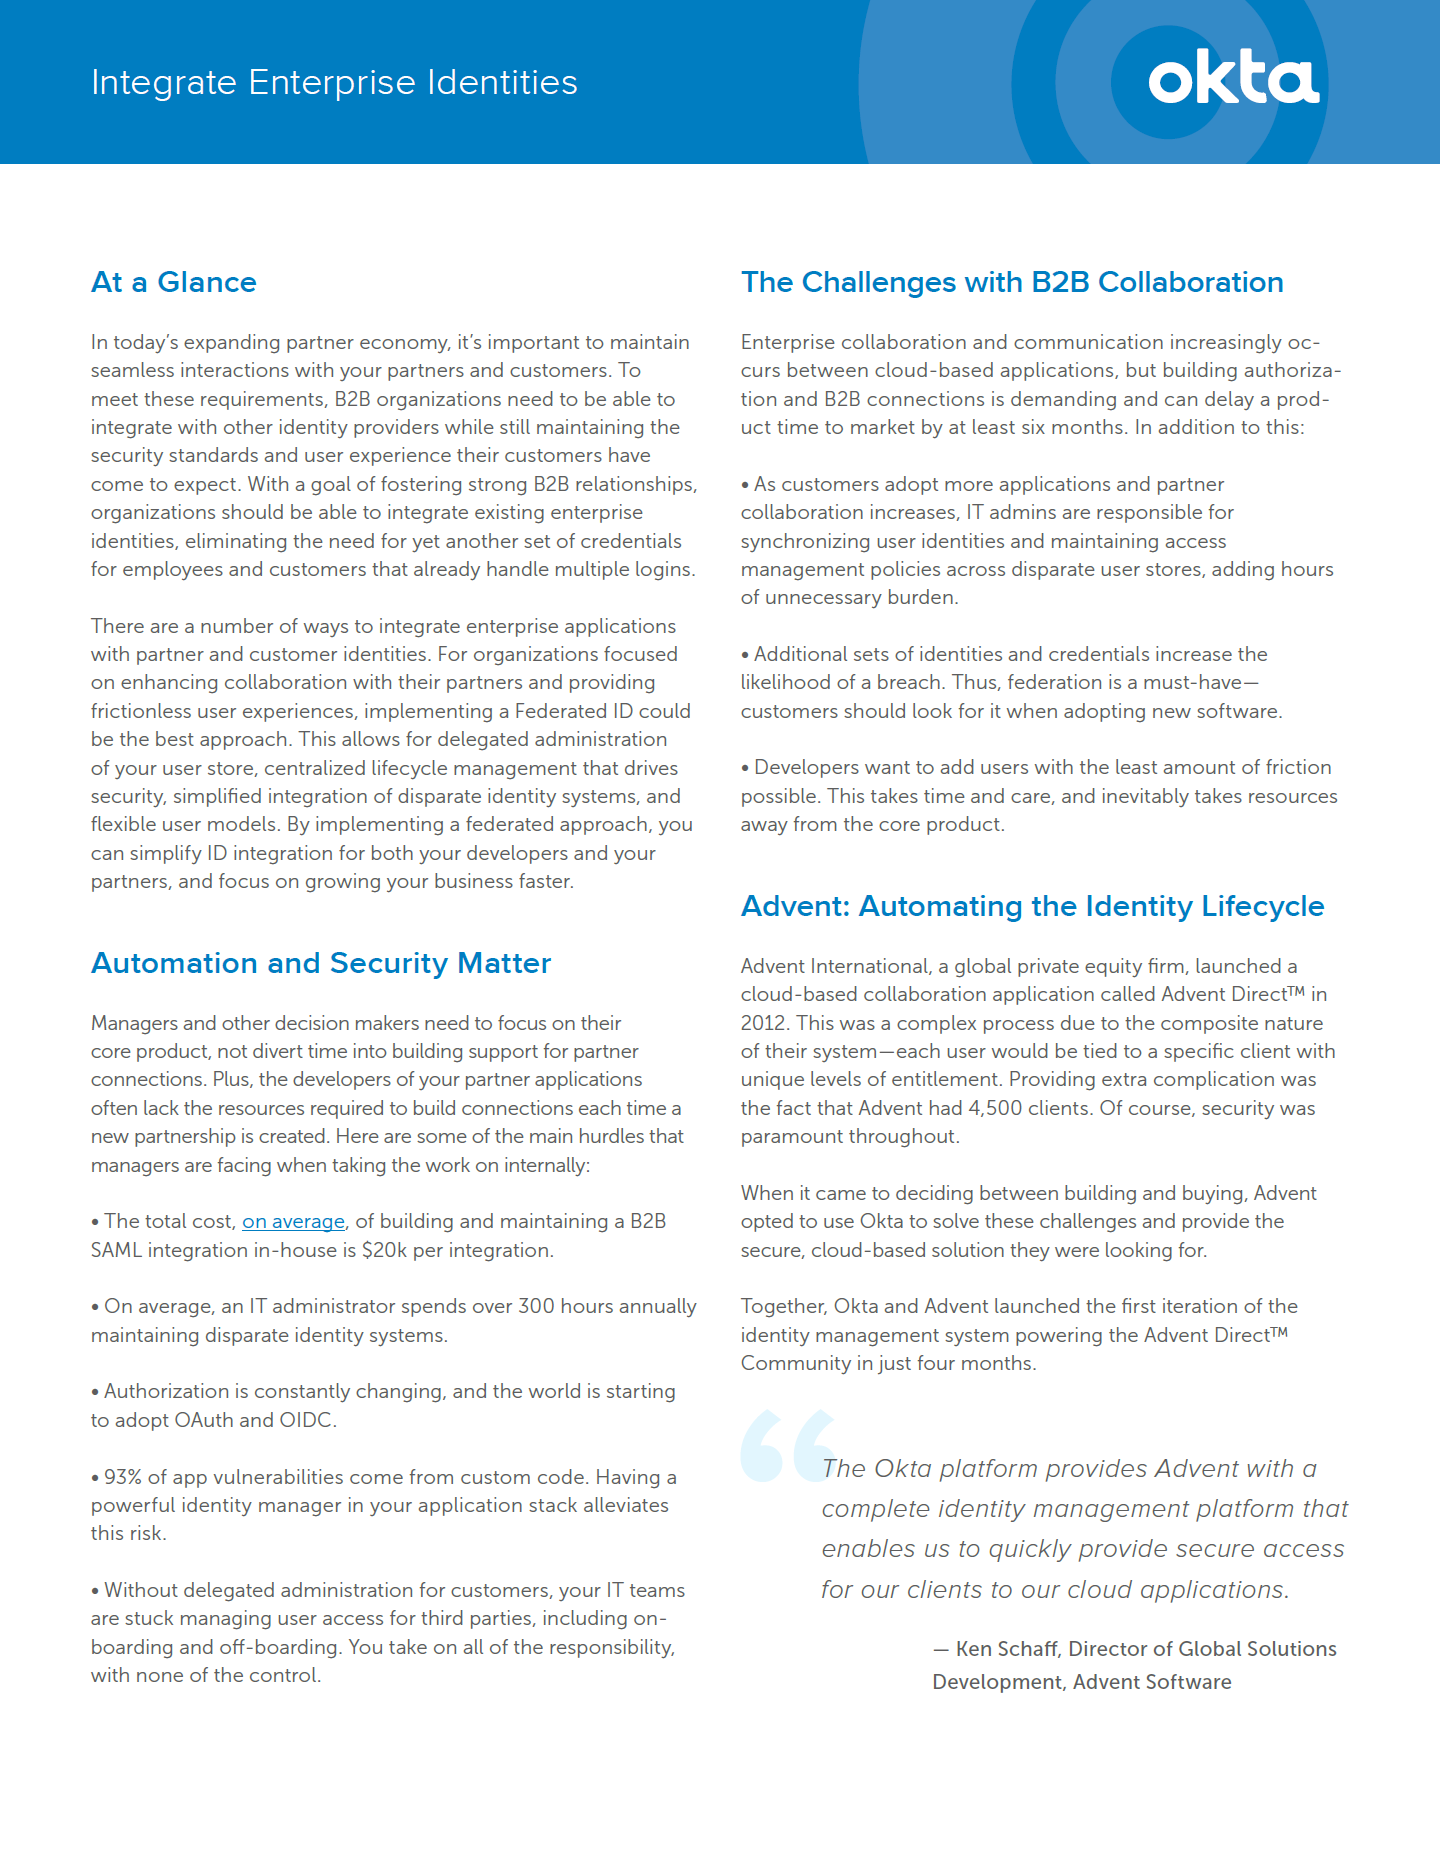 Read this Okta datasheet to learn how best to integrate enterprise identities.